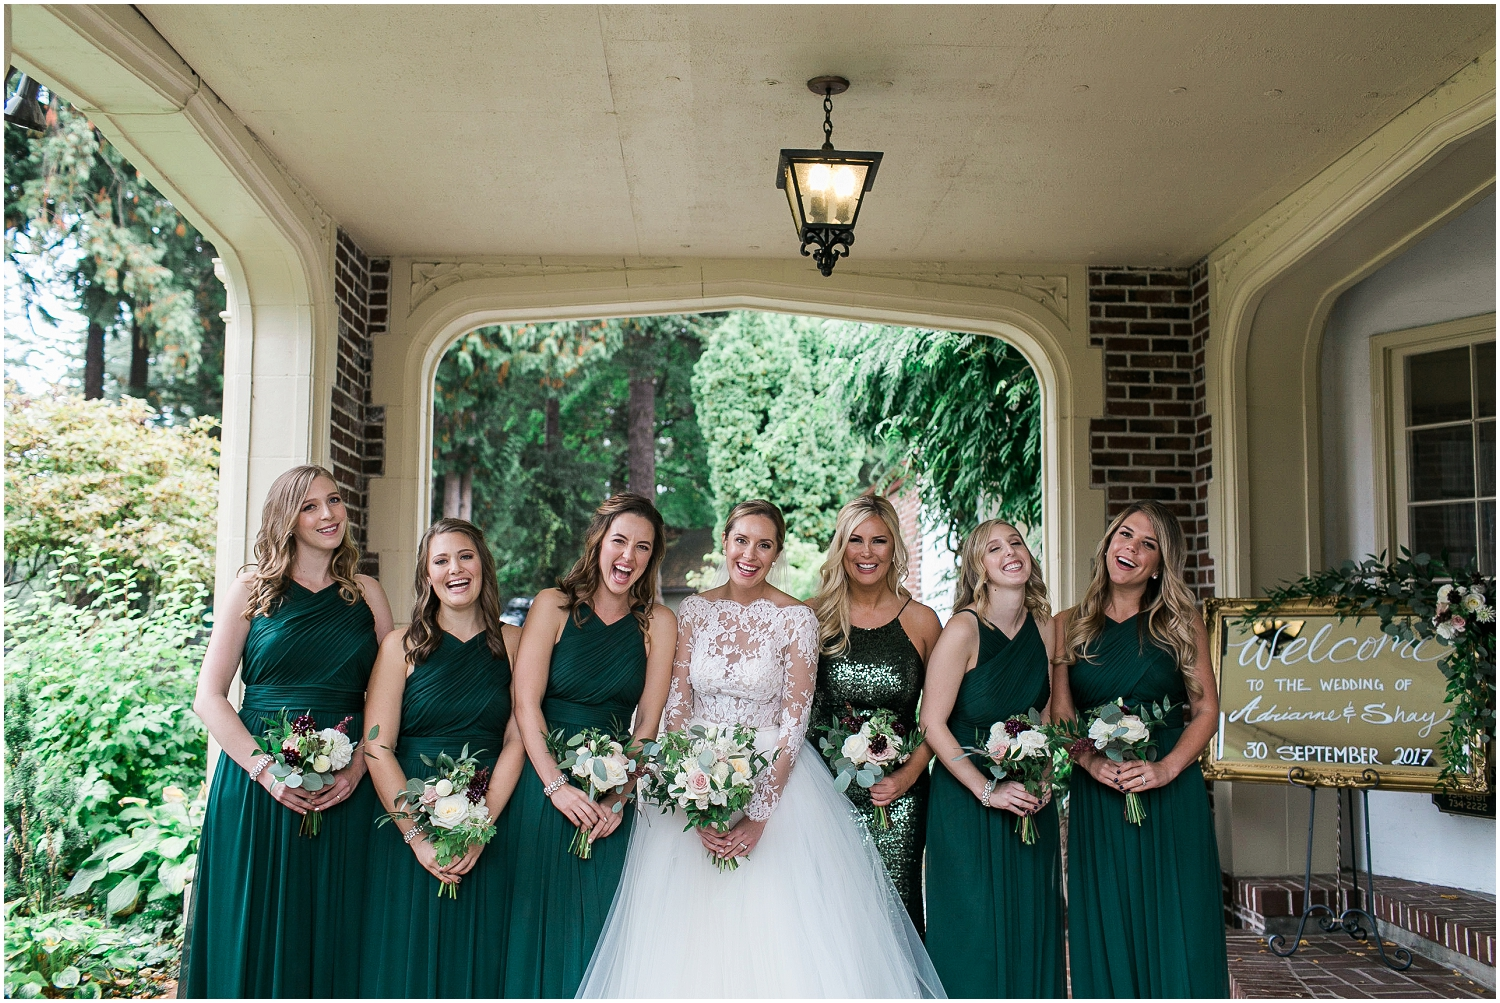 Fairmont Manor, Skagit County Photographer, Bellingham Wedding Photographer, Stunning Wedding Details, Greenery, Tuxes and Lace